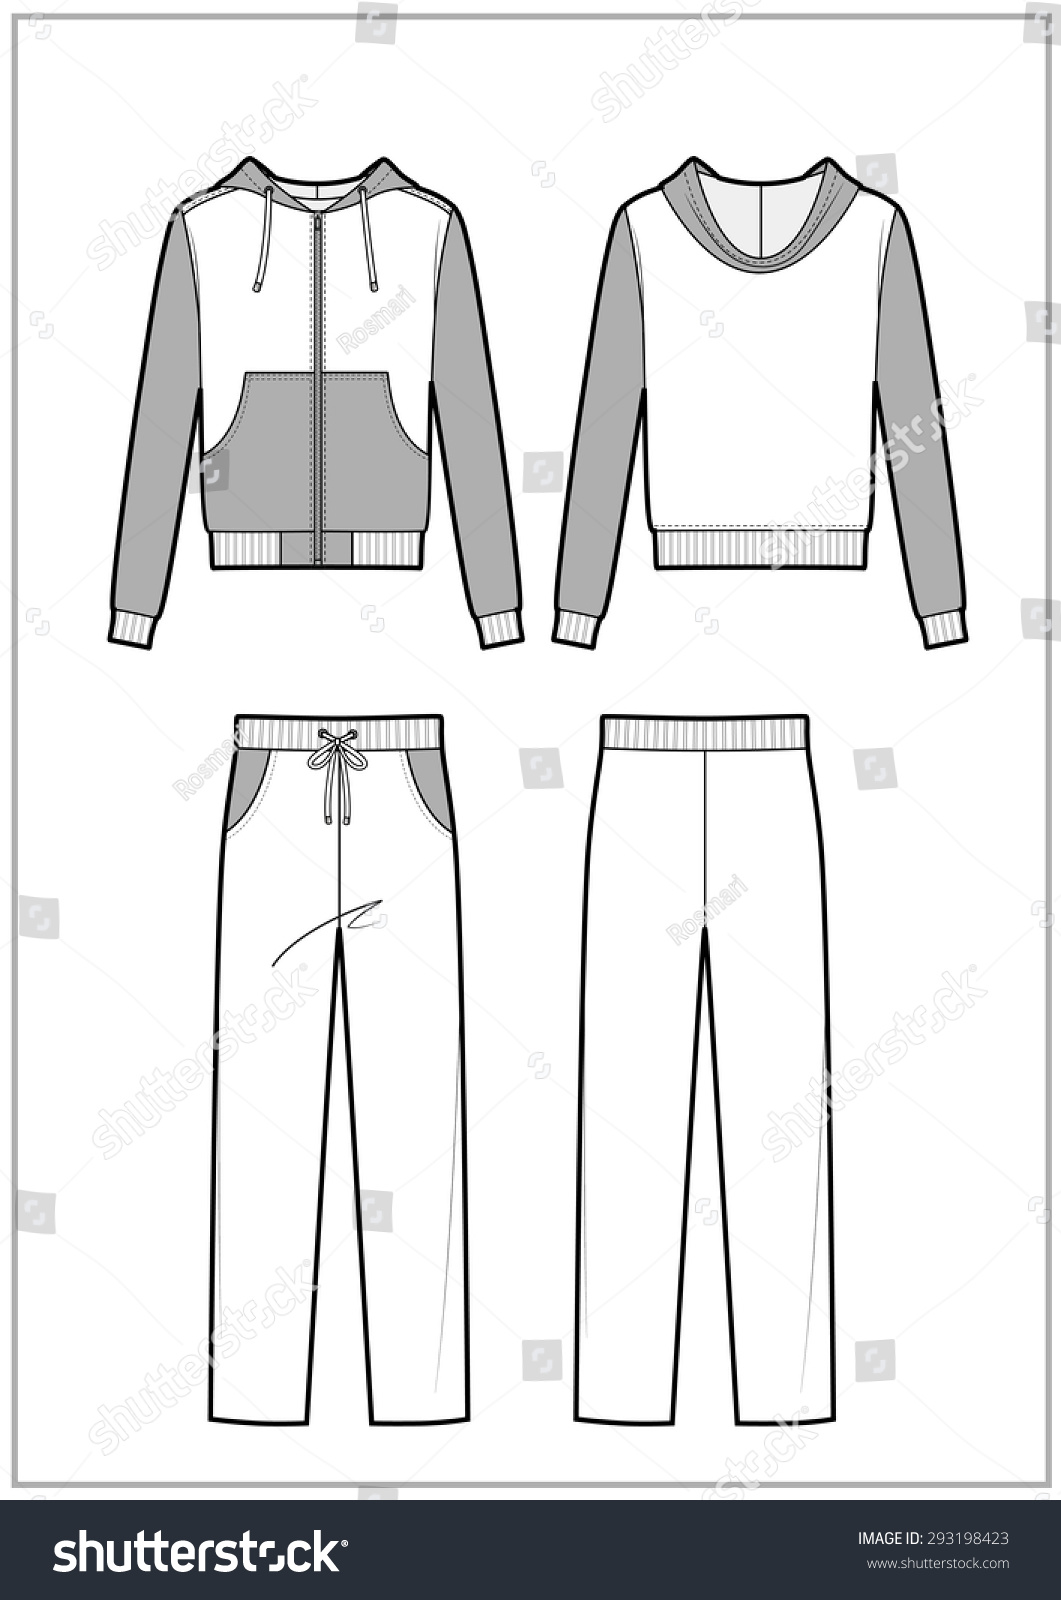 Technical sketch men's tracksuit Stock Photo 293198423